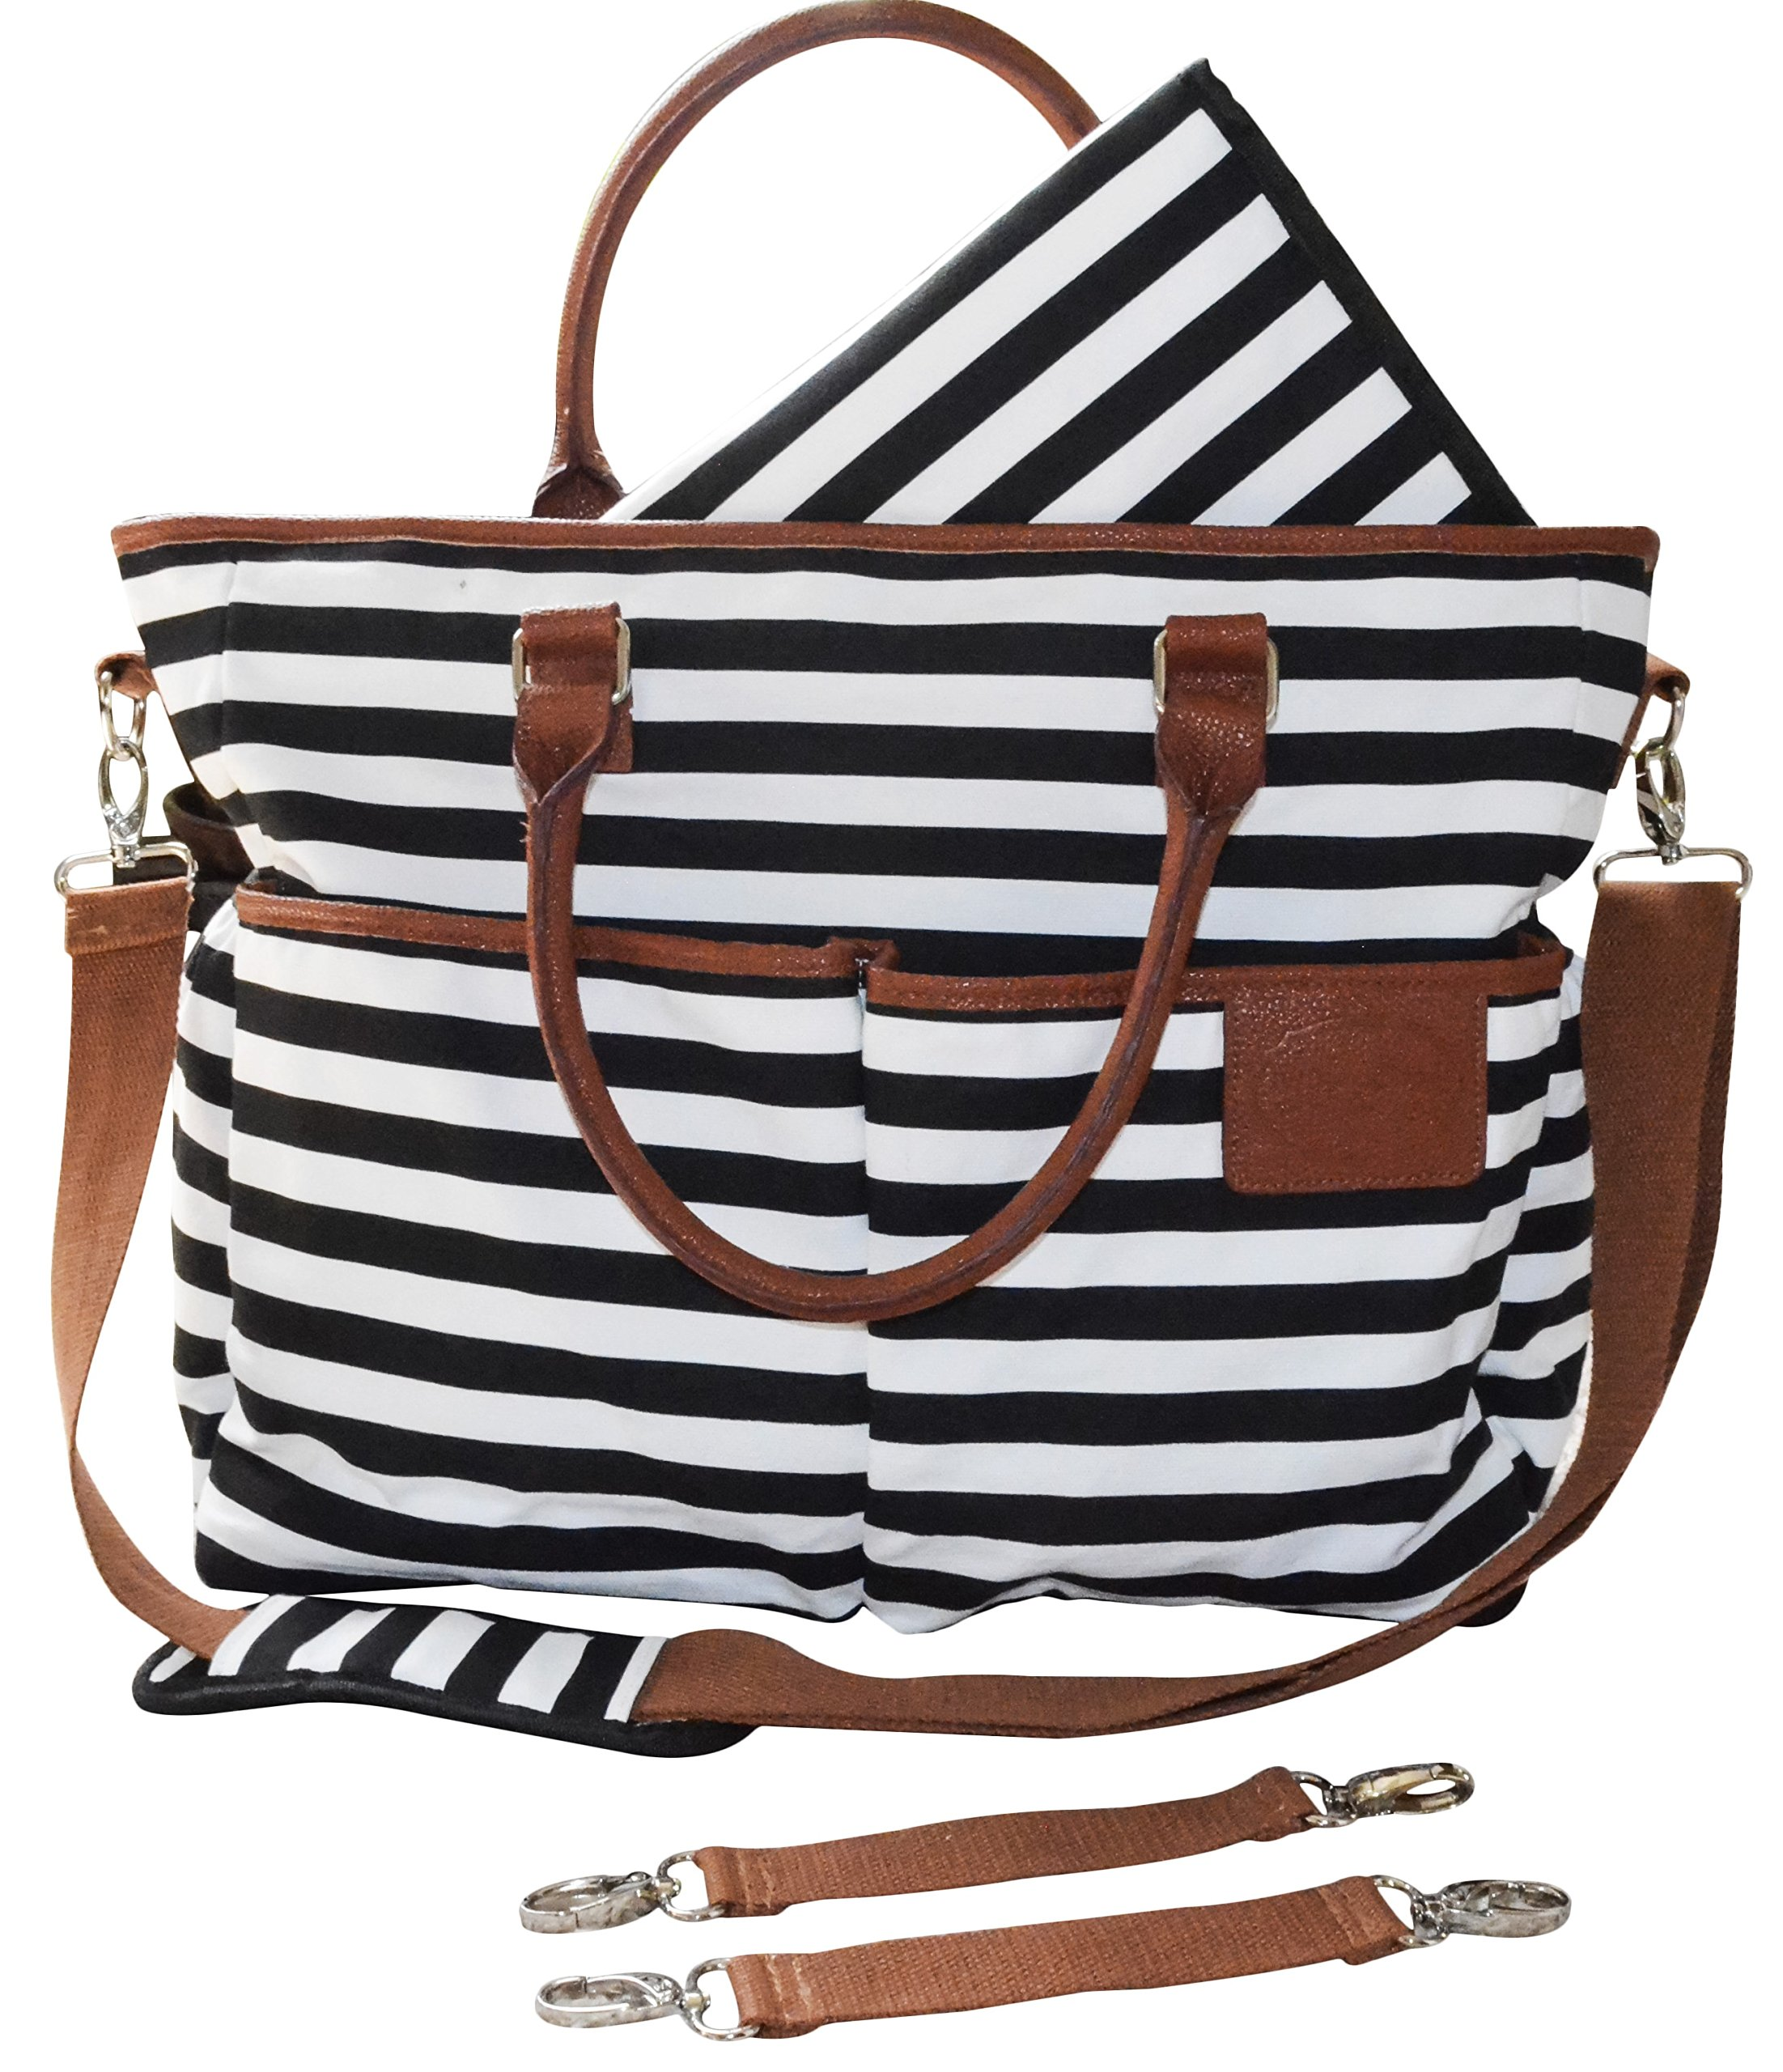 Diaper Bag for Stylish Moms, Black/White, Premium Cotton Canvas Tote Bag, 13 pockets Including Insulated Bottle Holders, by MommyDaddy&Me, Black/White